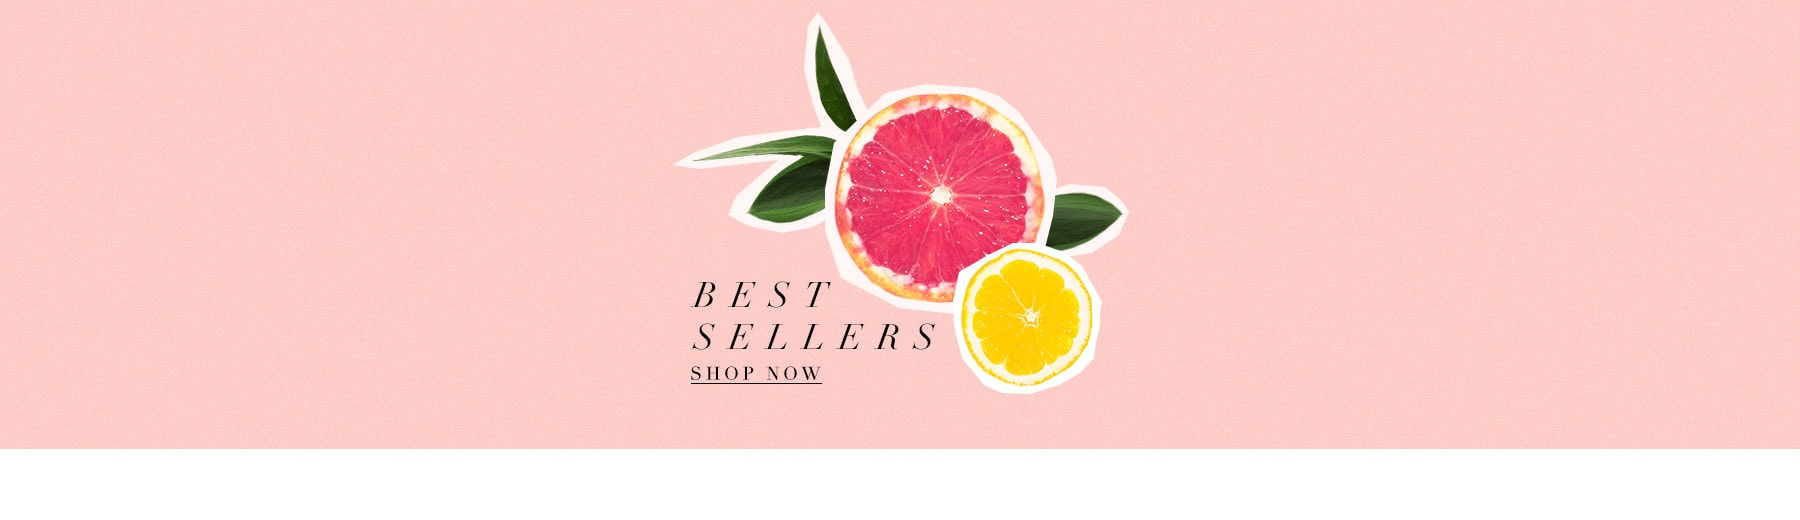 Best Sellers. Shop now.